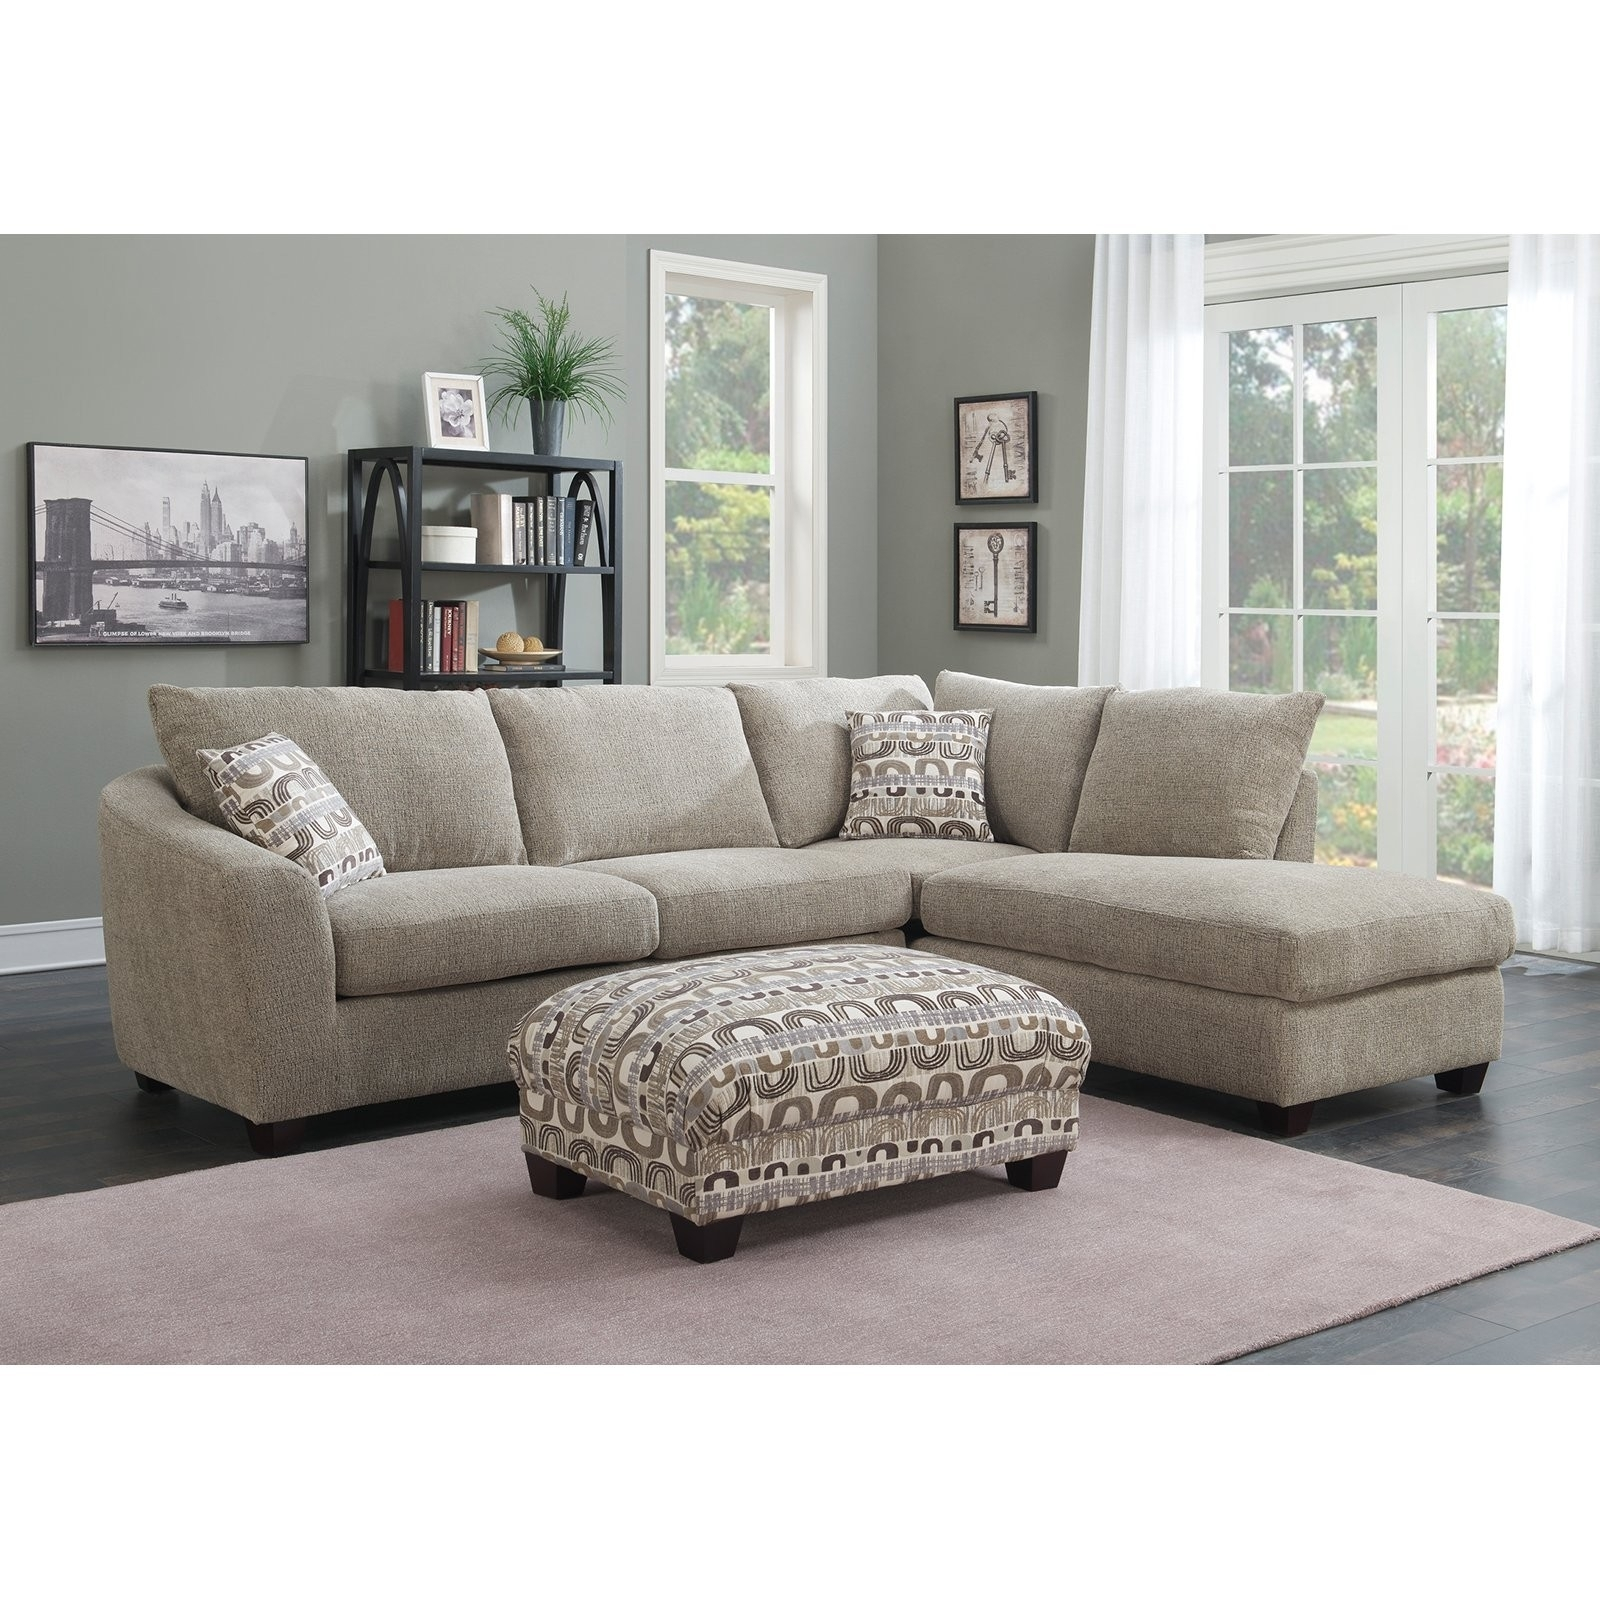 2 Piece Sectional With Chaise Urban Small West Elm C Regarding Avery 2 Piece Sectionals With Laf Armless Chaise (Gallery 22 of 30)